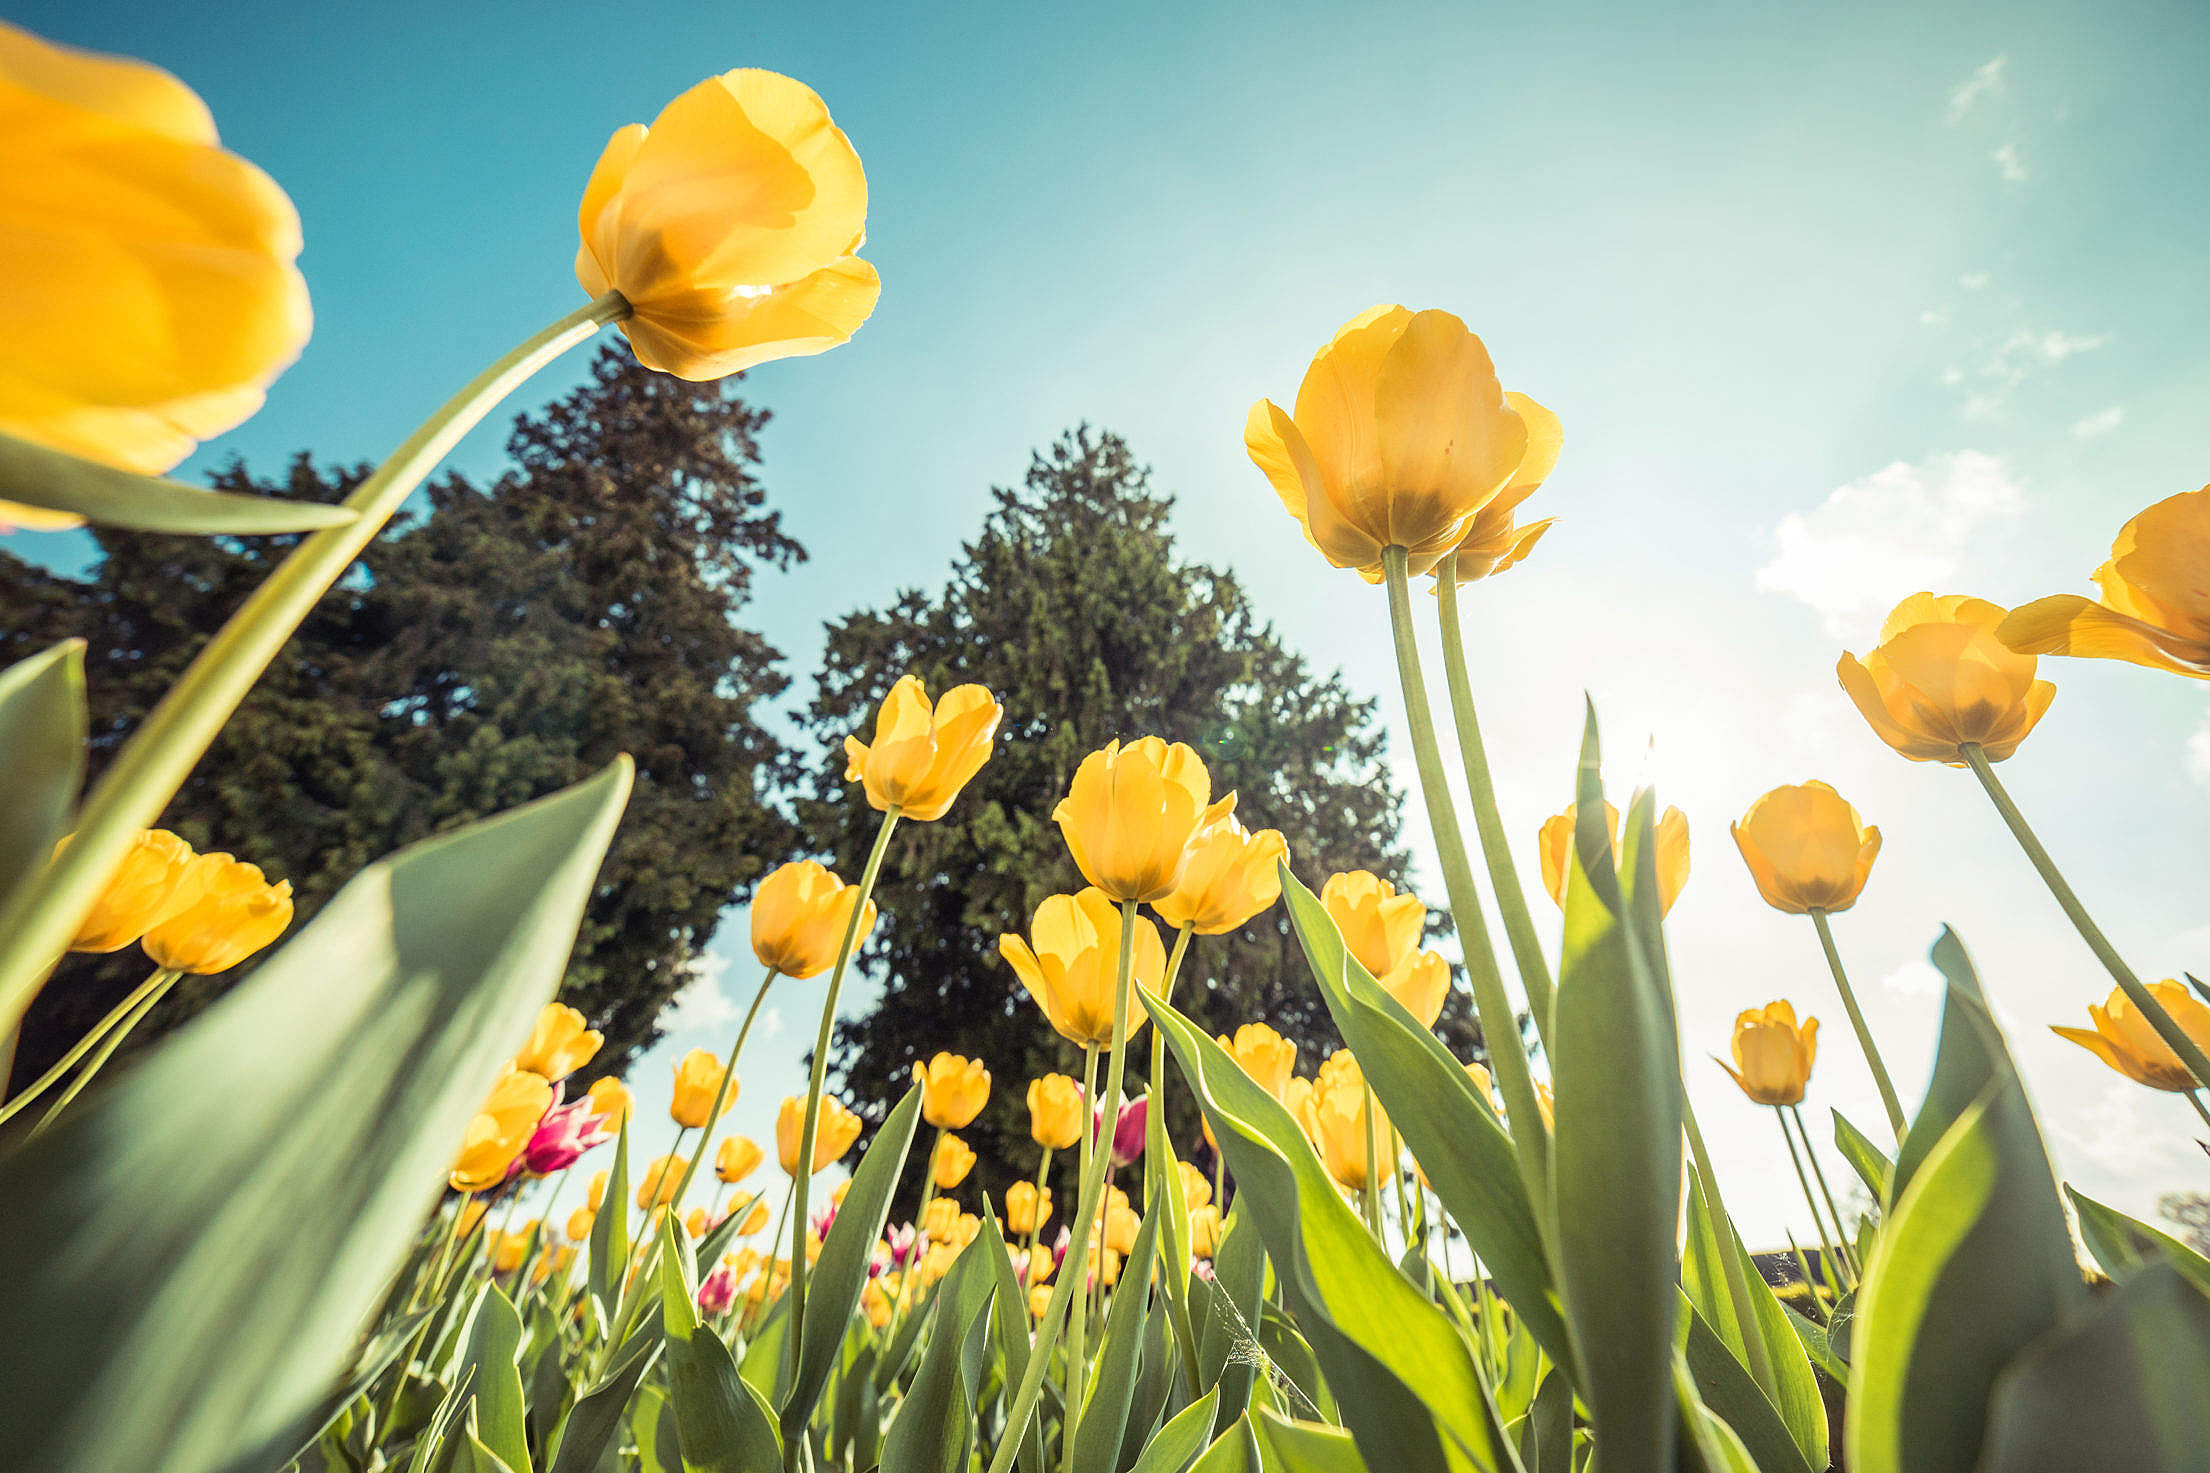 Yellow Tulips From Below Against Bright Sky Free Stock Photo